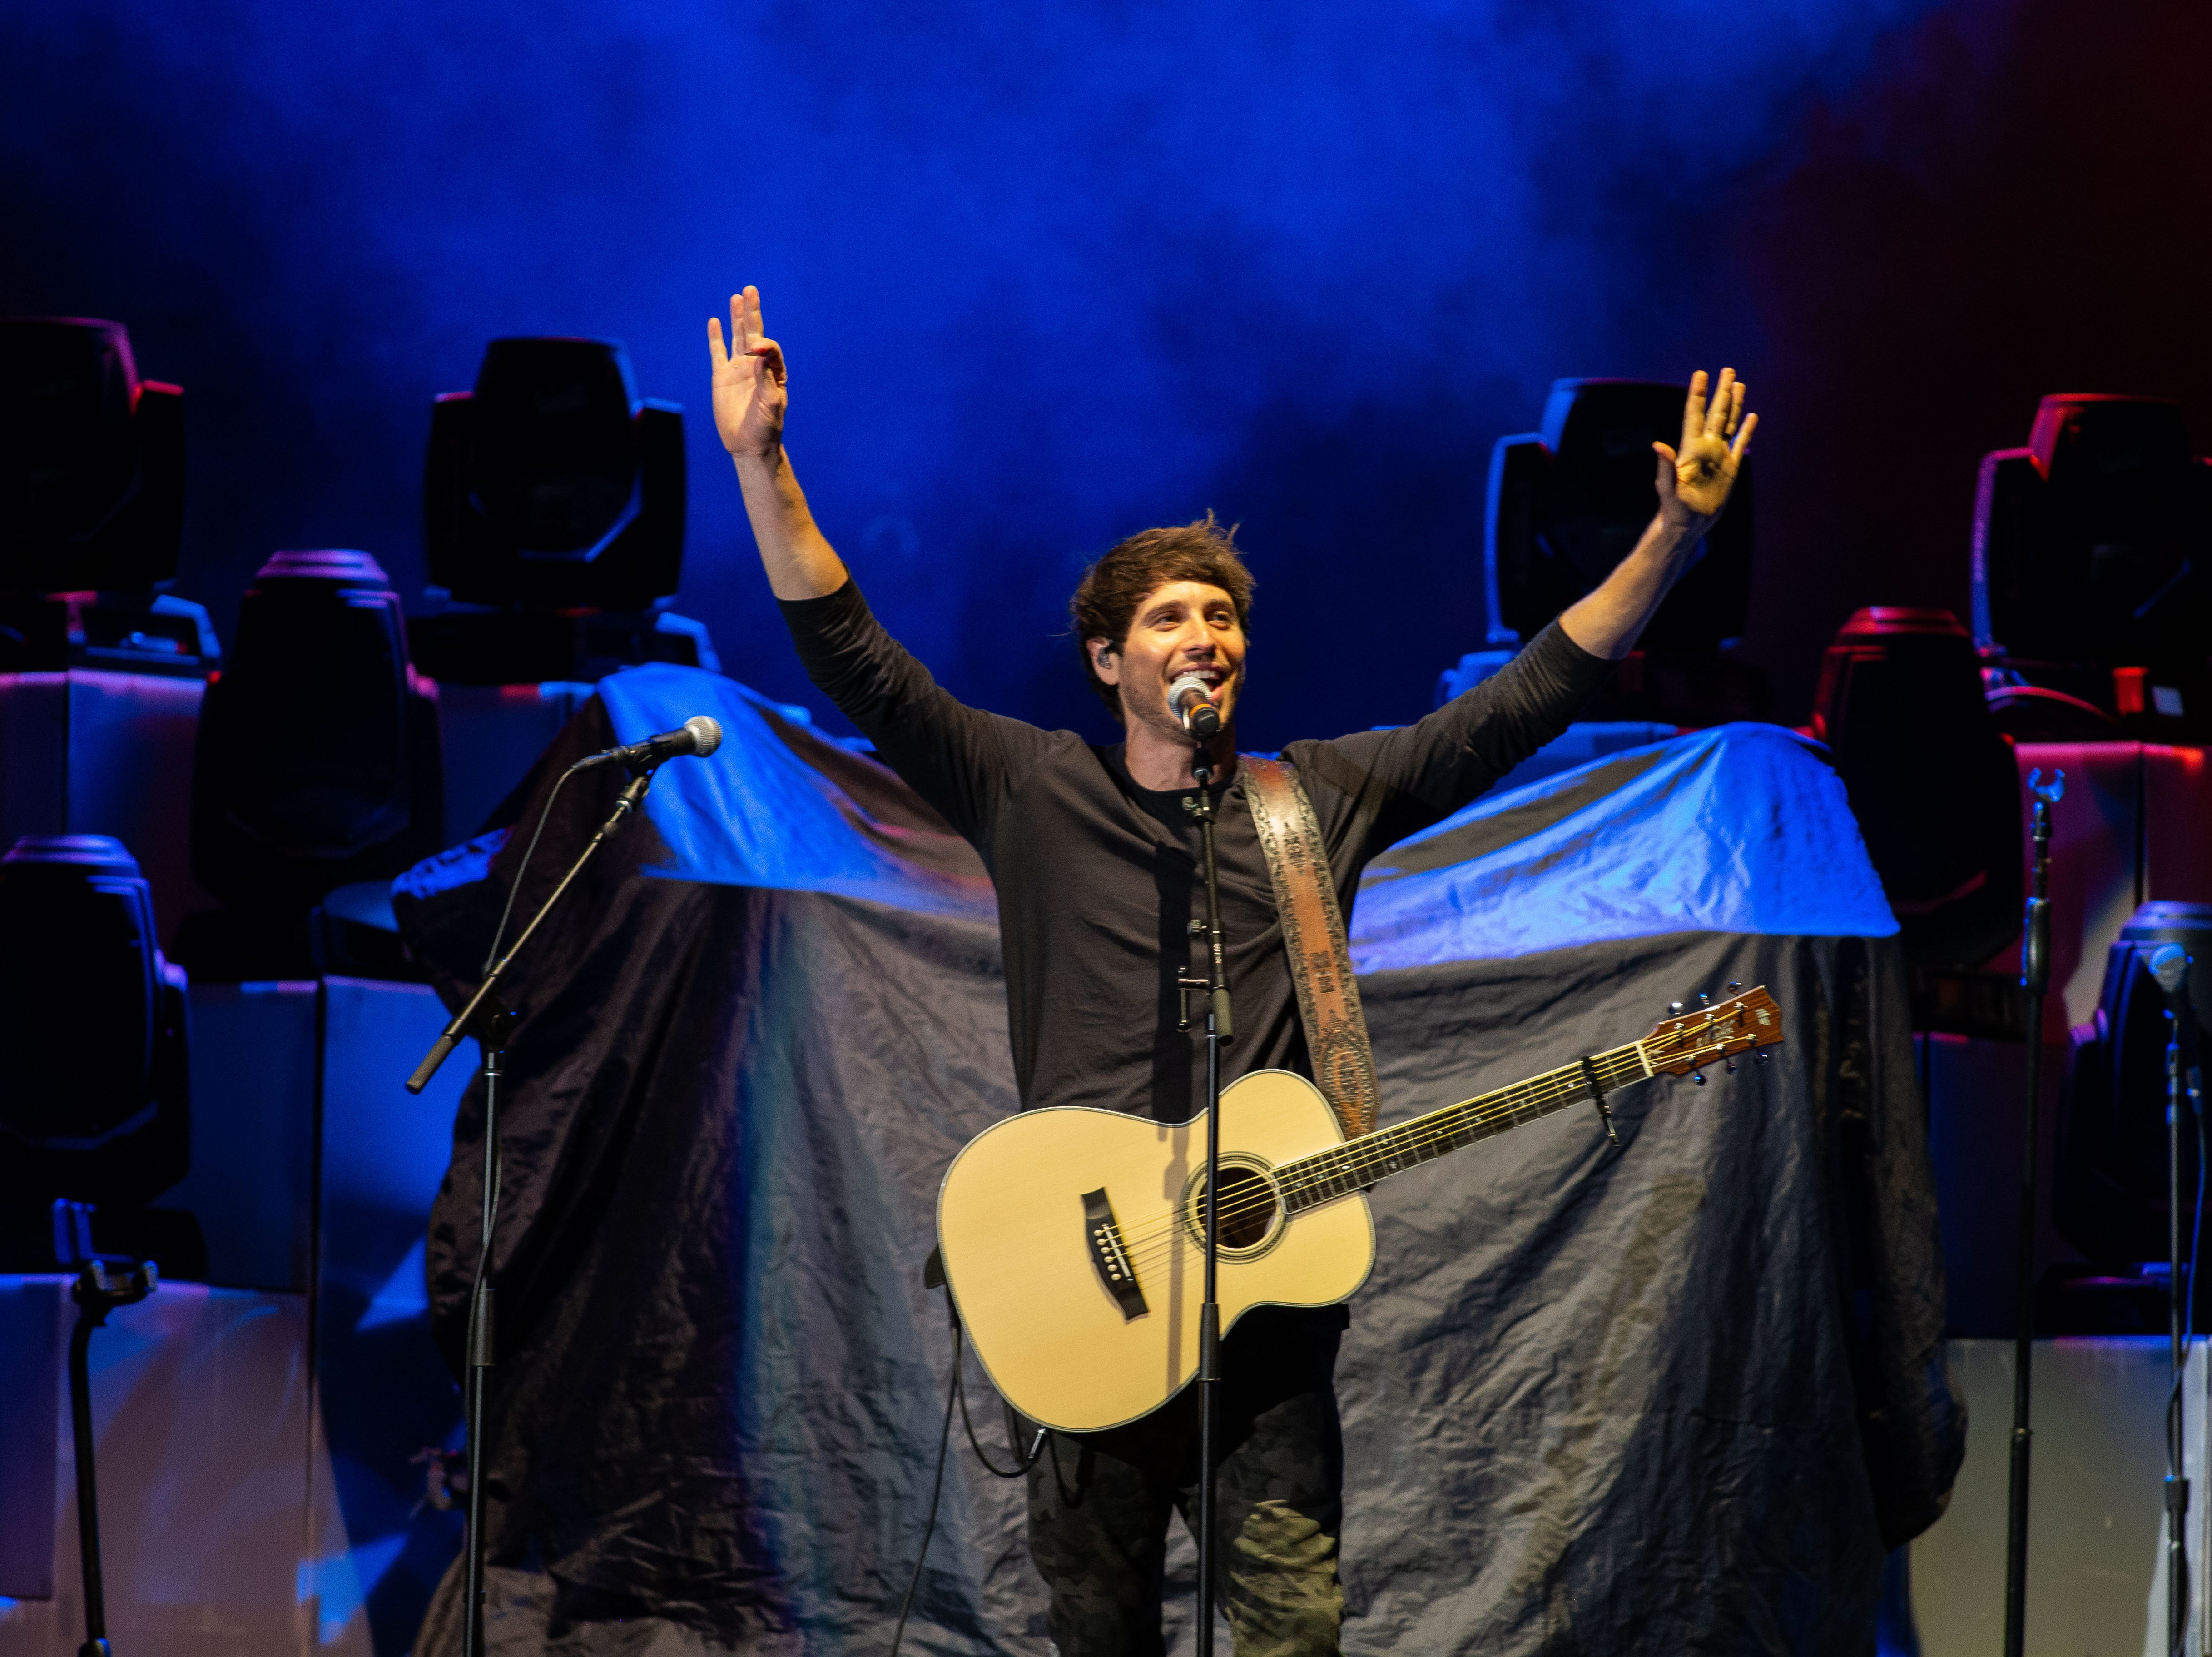 Morgan Evans, who opened for Chris Young, reacts to the crowd during a concert at the Pan Am Center in Las Cruces on Thursday, Sept. 13, 2018.